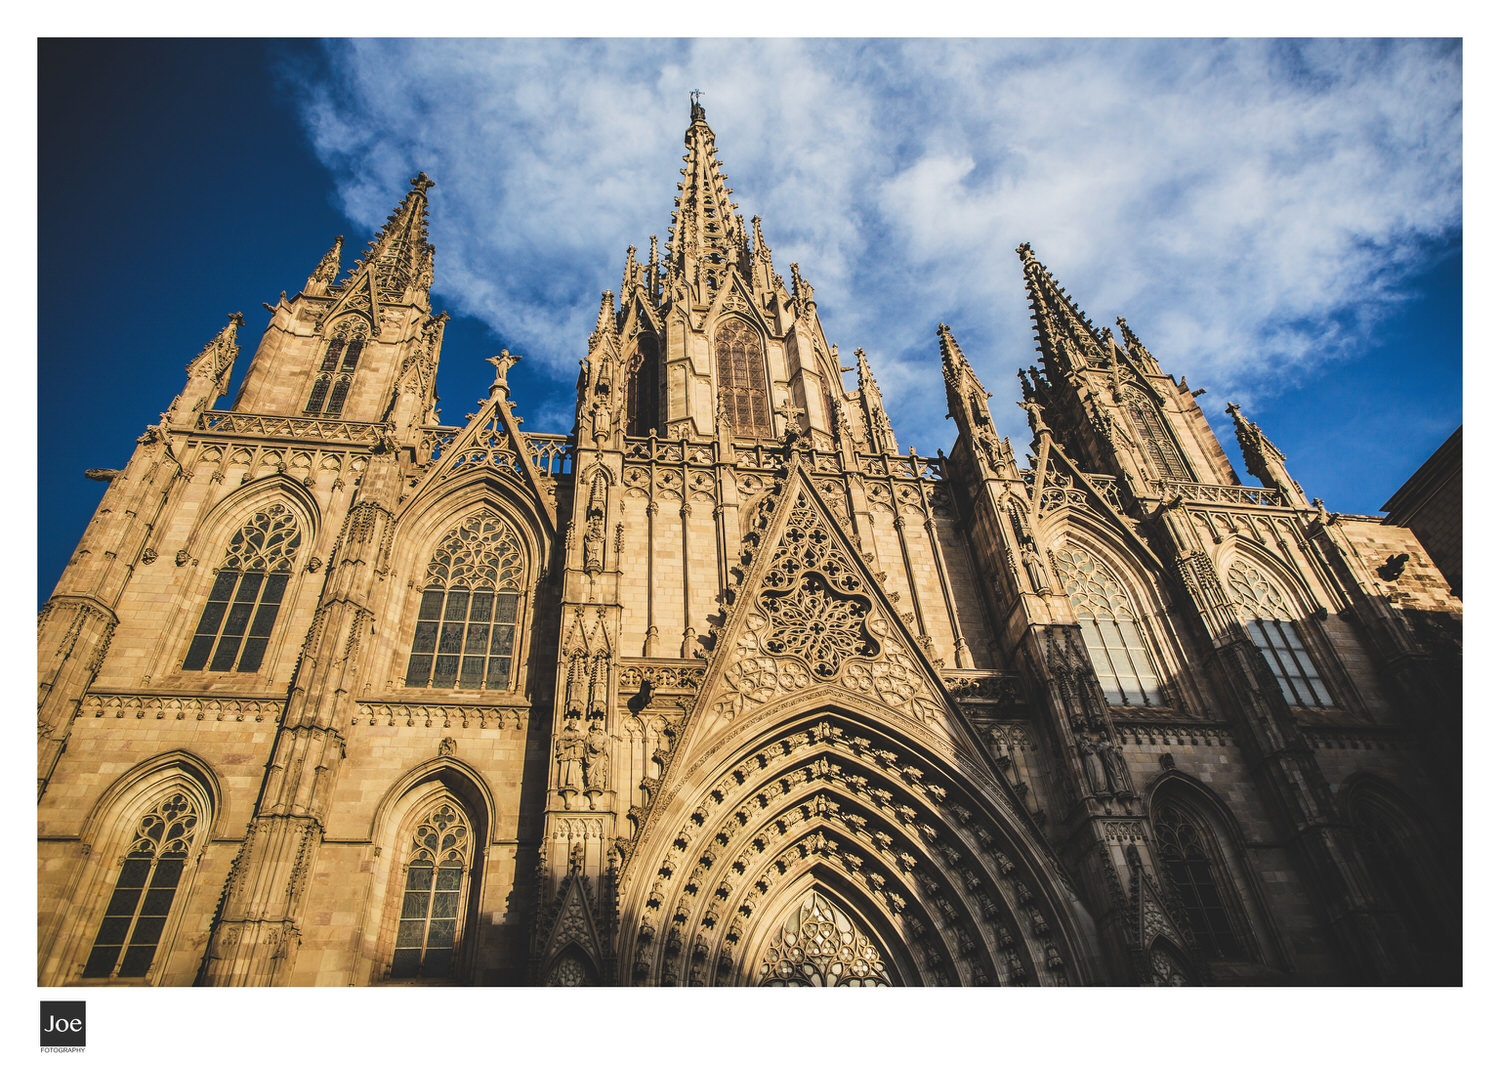 joe-fotography-46-barcelona-catedral-de-barcelona-pre-wedding-linda-colin.jpg